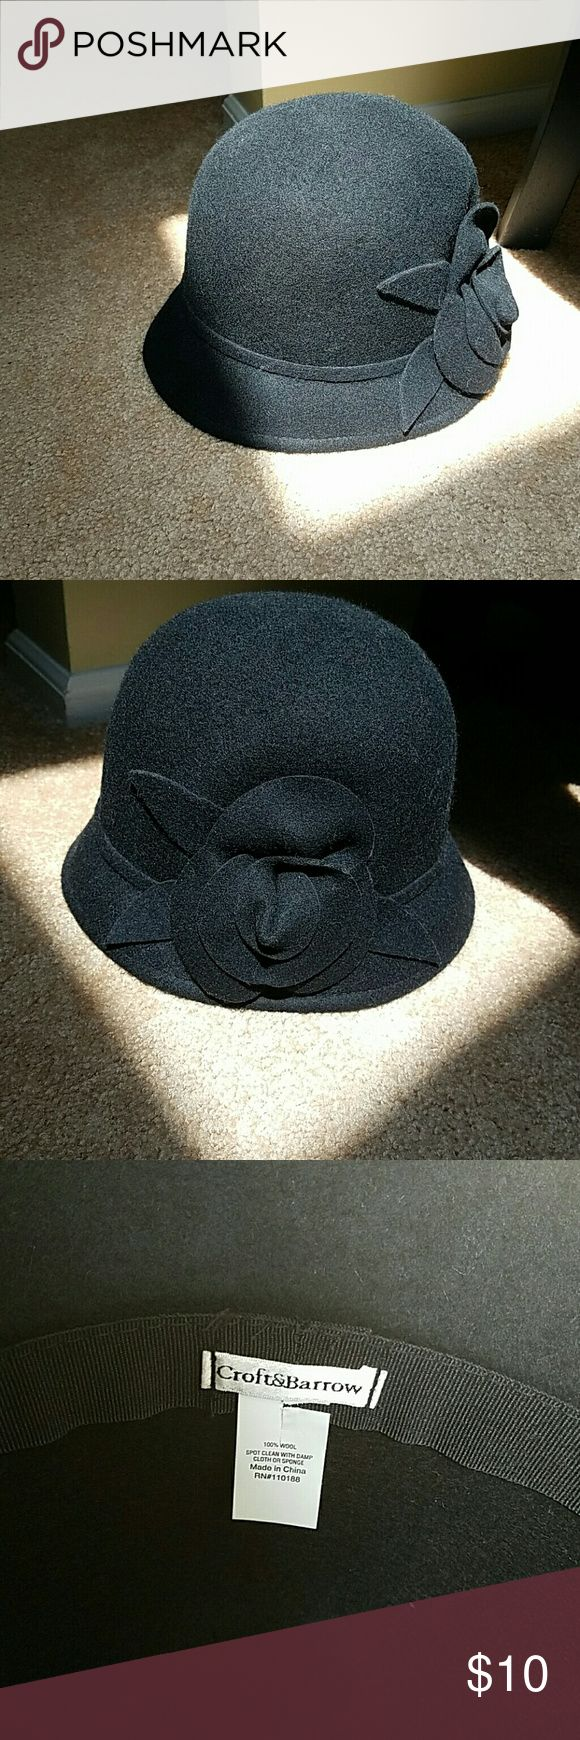 Black Wool Bowler hat 100%wool black bowler hat  (I know it's summer and the last thing you want to think about is wool....but I need the space!) Never worn! Croft & Barrow Accessories Hats